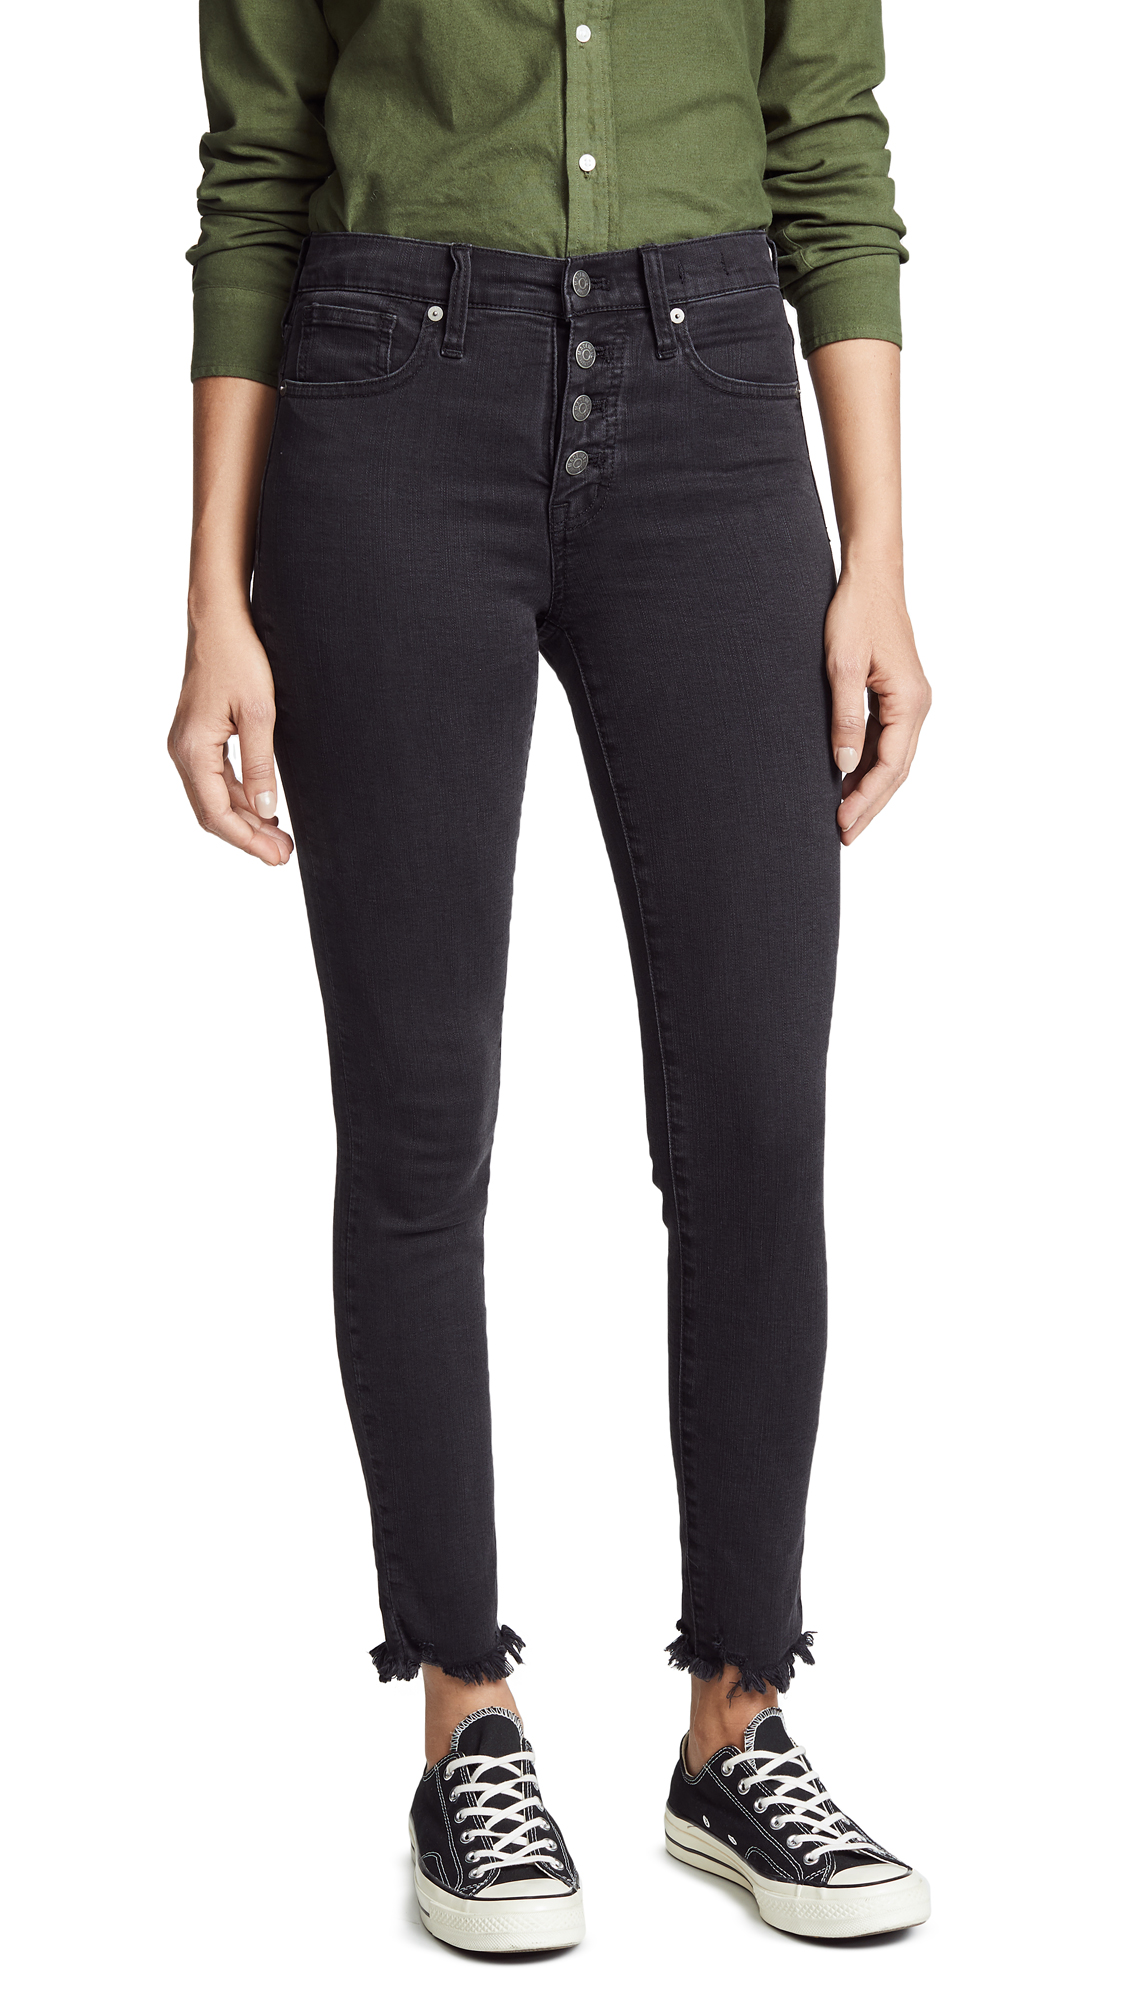 Madewell High Rise Skinny Jeans with Button Fly - Black